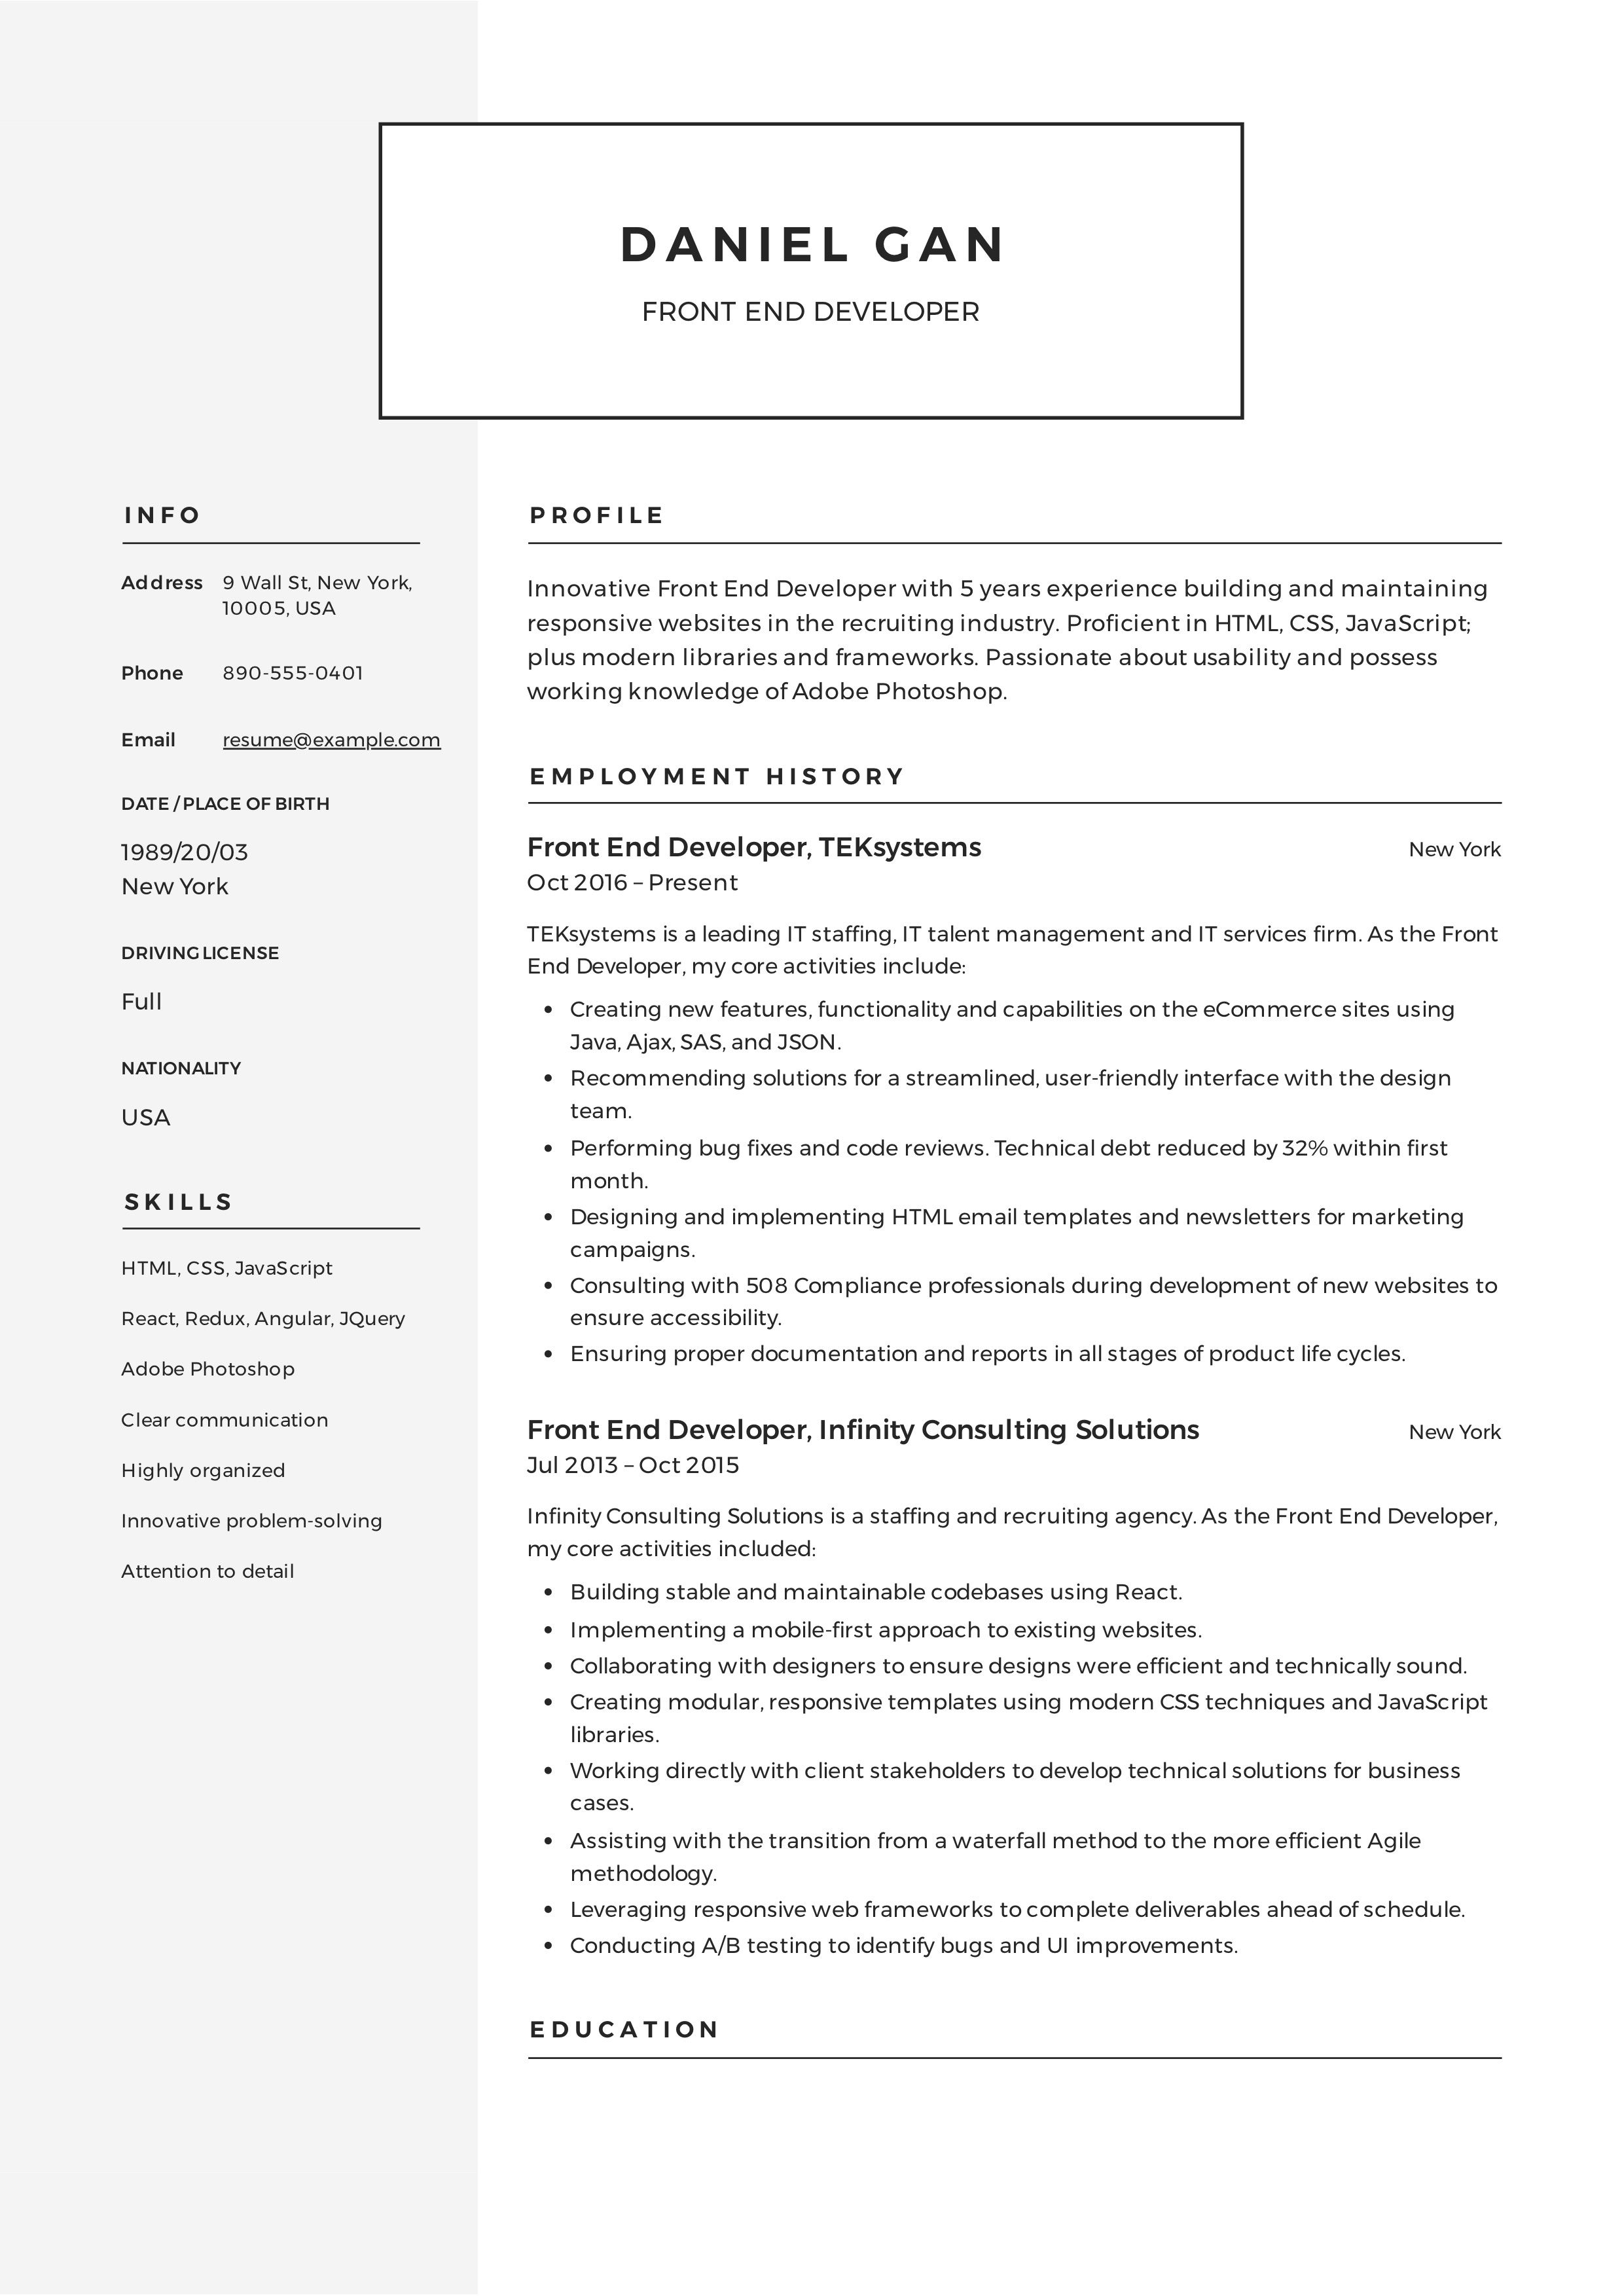 Front End Developer Resume Guide Resume Examples Web